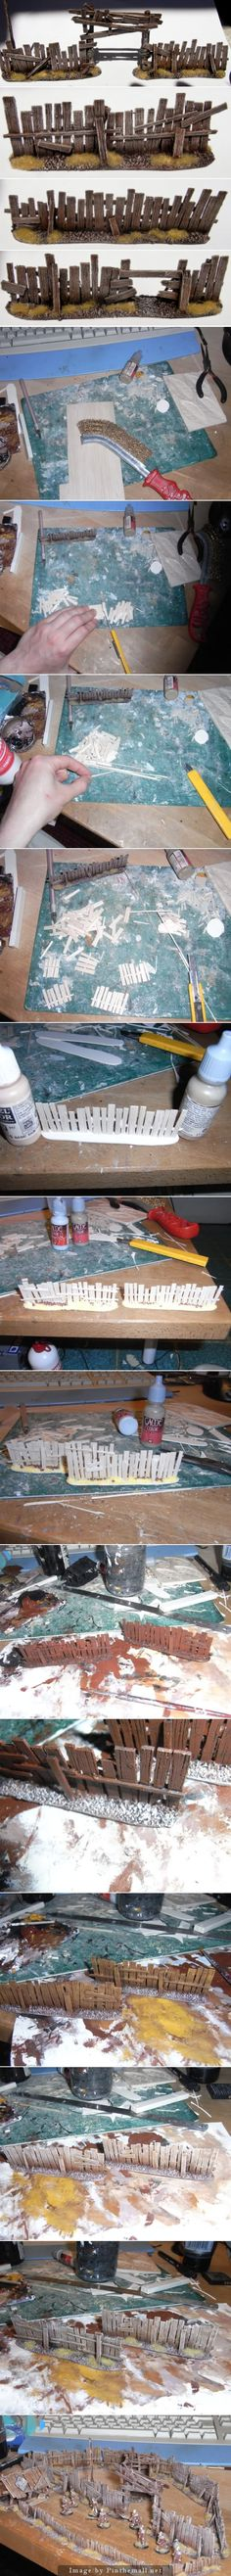 Model Railroad Fence How to. For more visit http://qr.net/3SC2